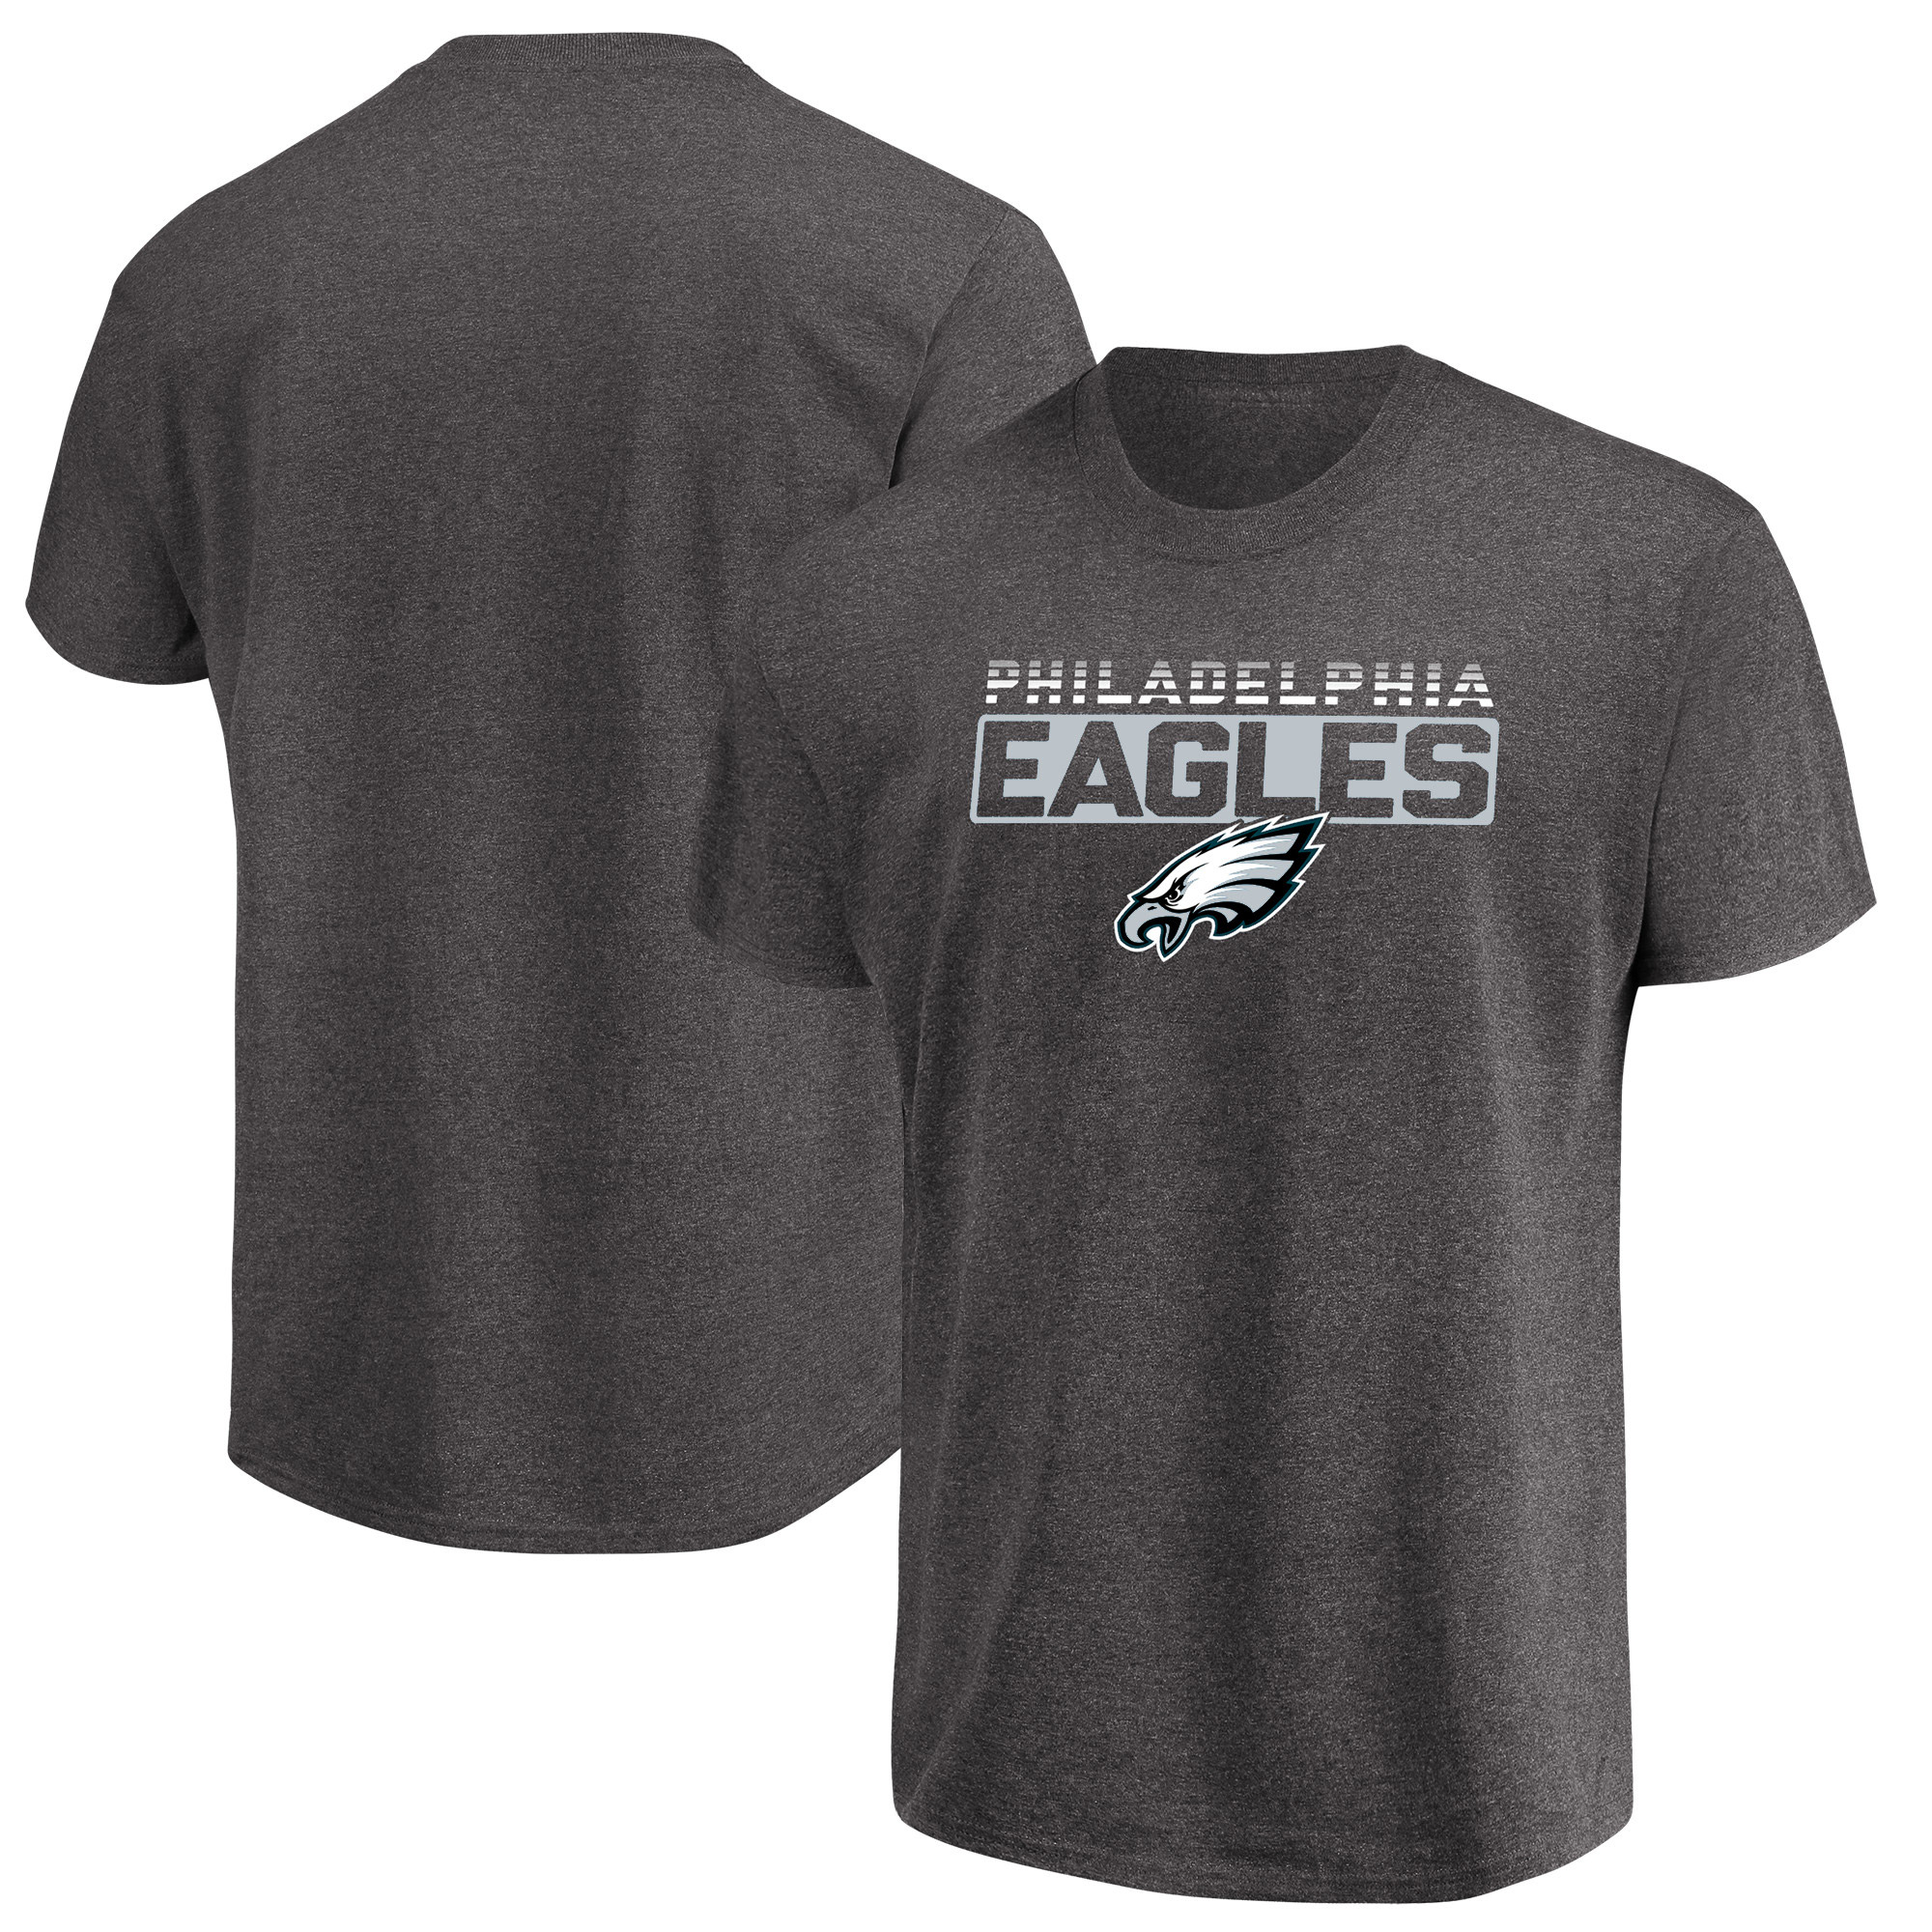 Men's Majestic Heathered Charcoal Philadelphia Eagles Come Into Play T-Shirt